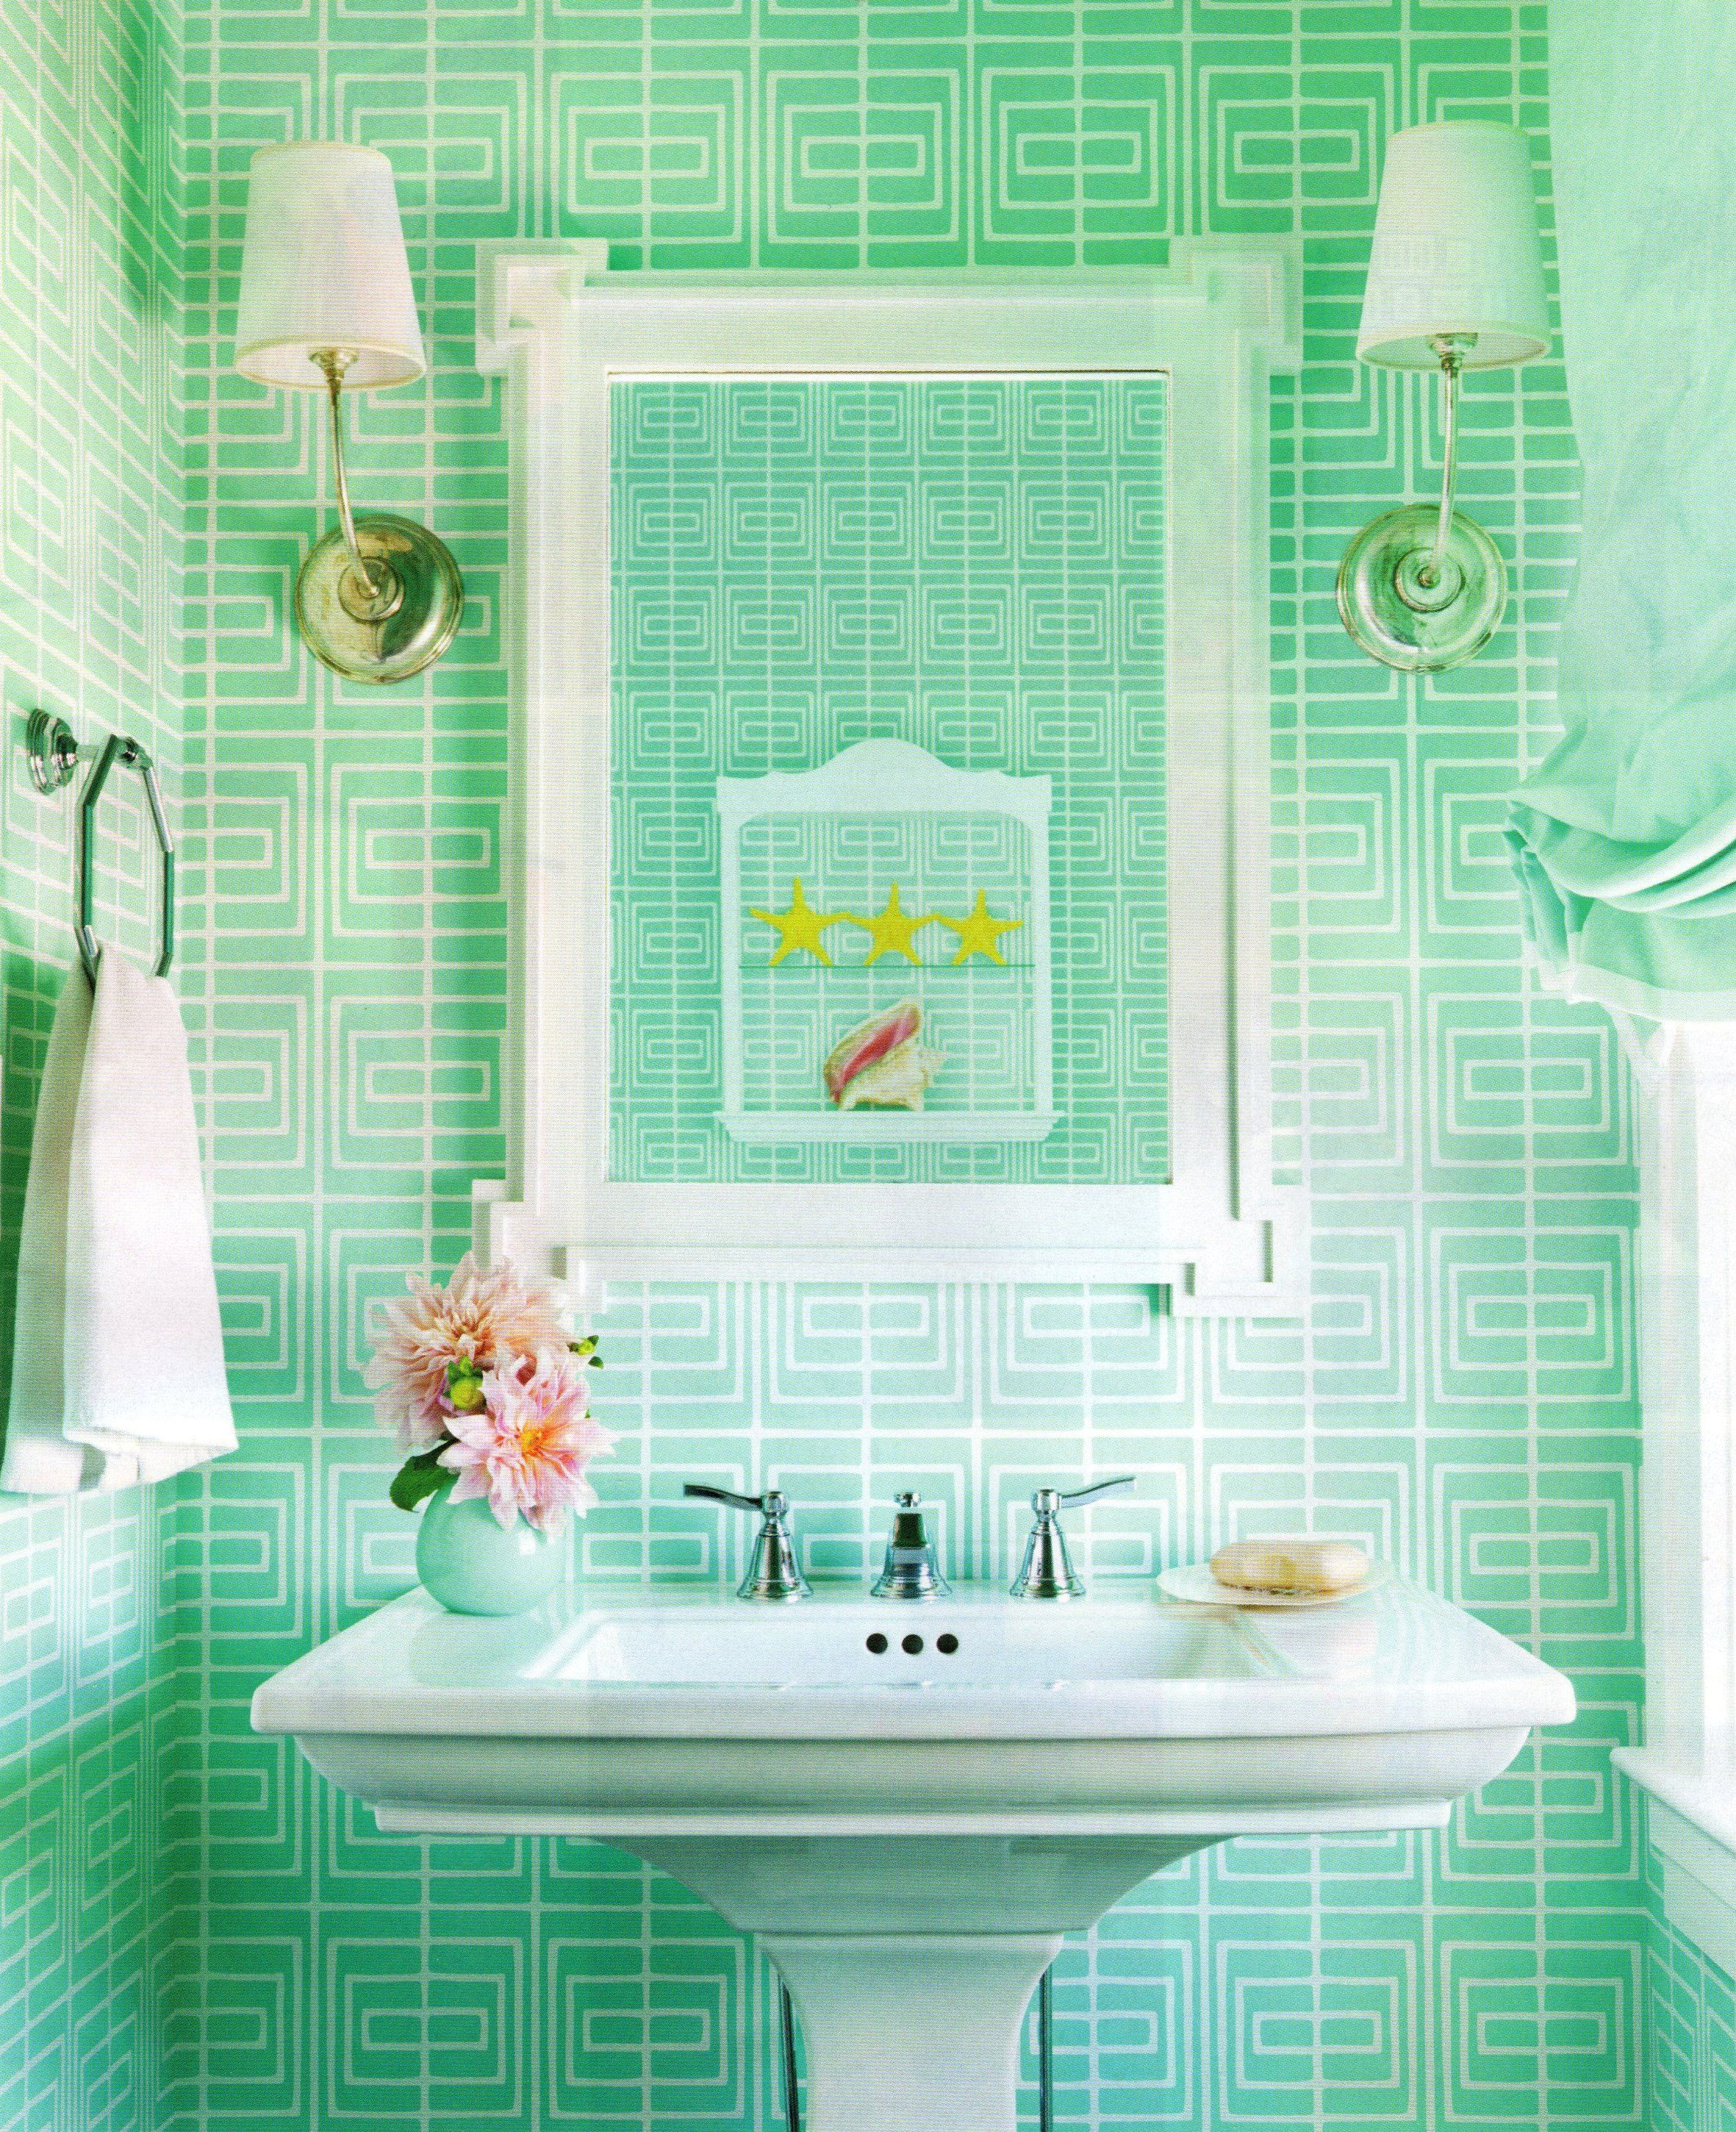 Wonderful Bright Green Bathroom Tiles Bring A Pretty Pop Of Fun. #colors #bathrooms #